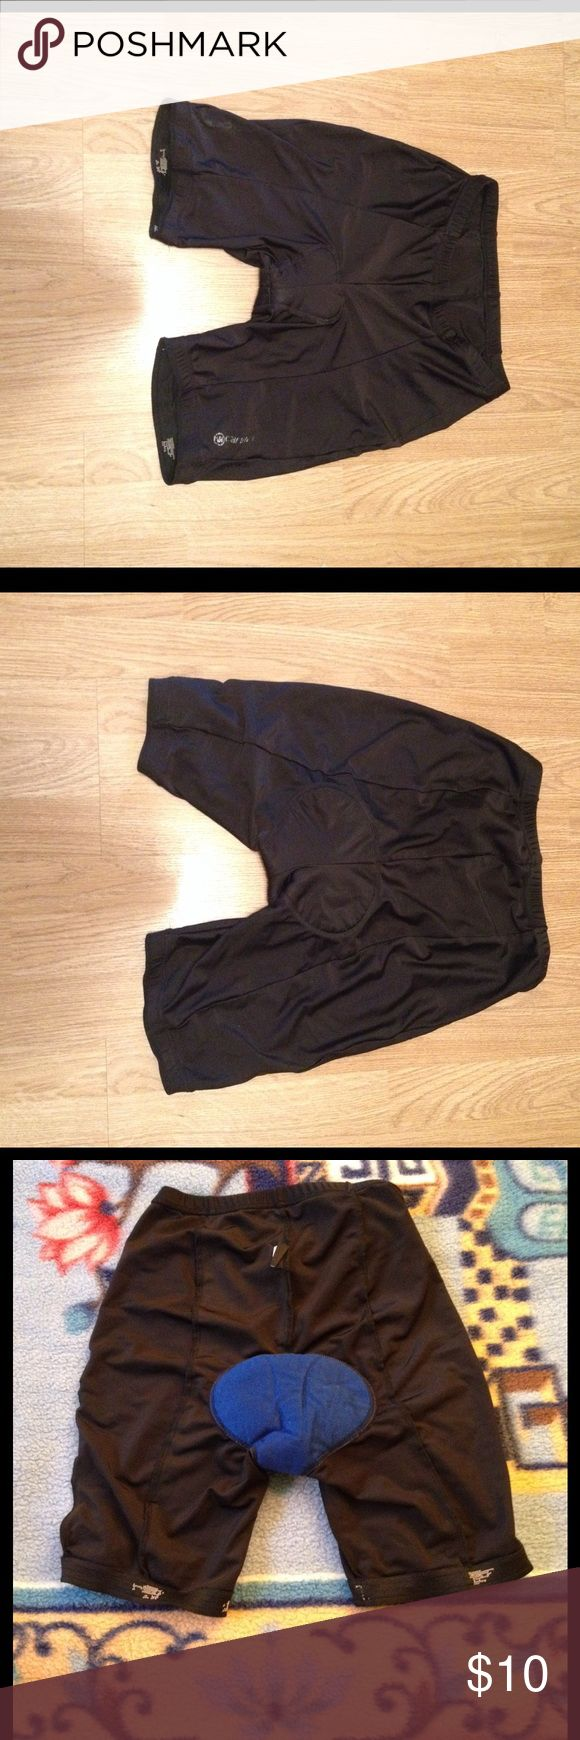 Canari Cycling Shorts Cycling shorts I used for training. The pair is about 4 years old, leg grips and padding has worn out. However, it is still in good condition with no tears and can still be used for shorter distance rides. Shorts Athletic